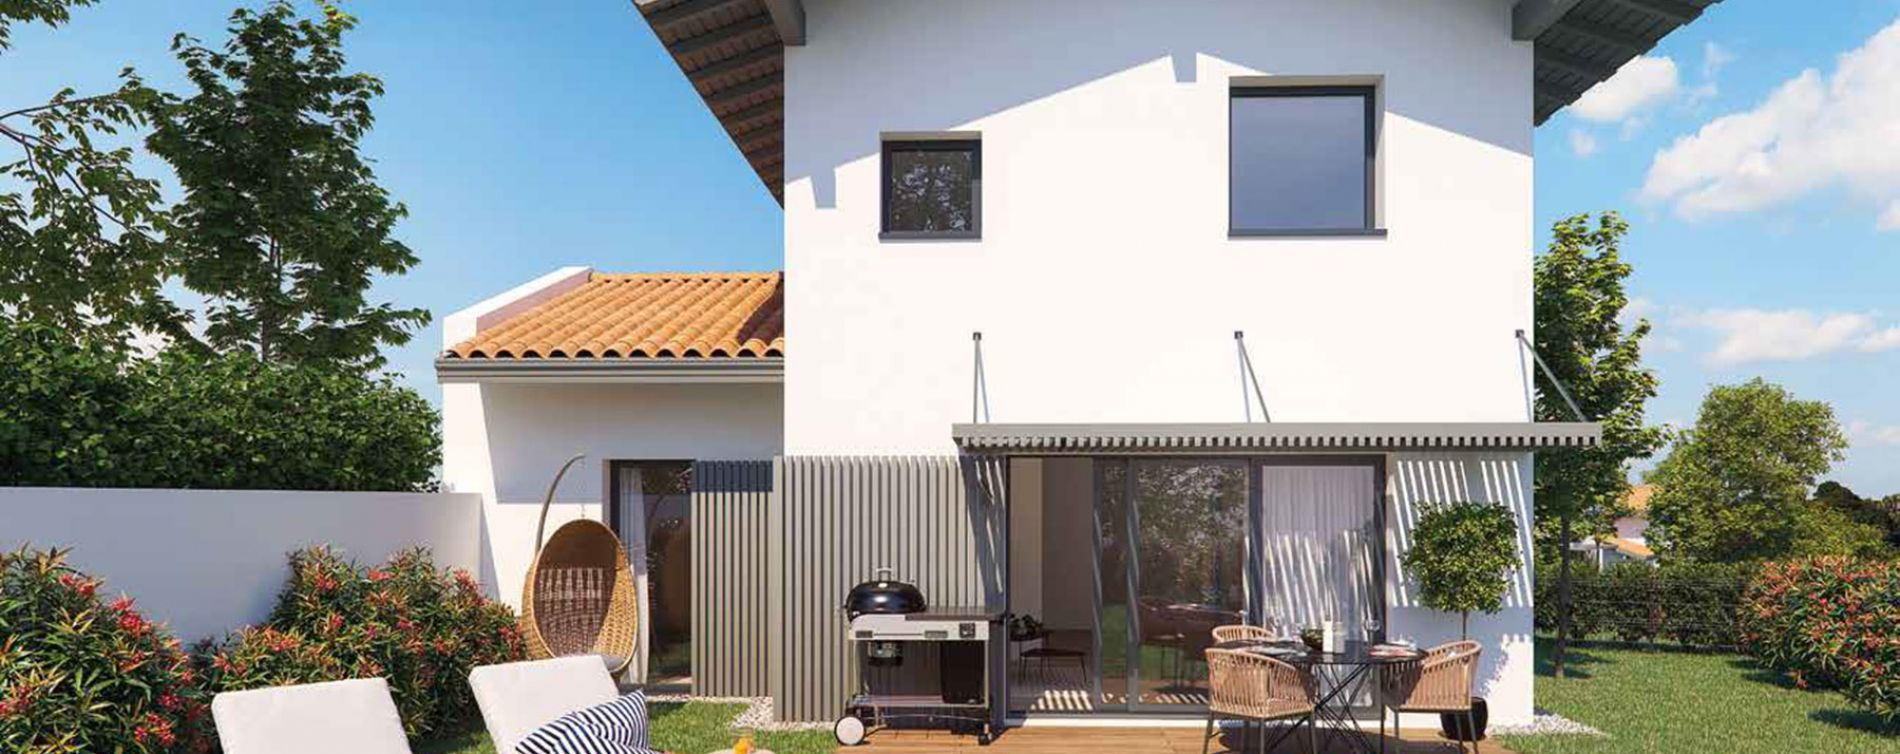 Anglet : programme immobilier neuve « Programme immobilier n°217817 » (3)